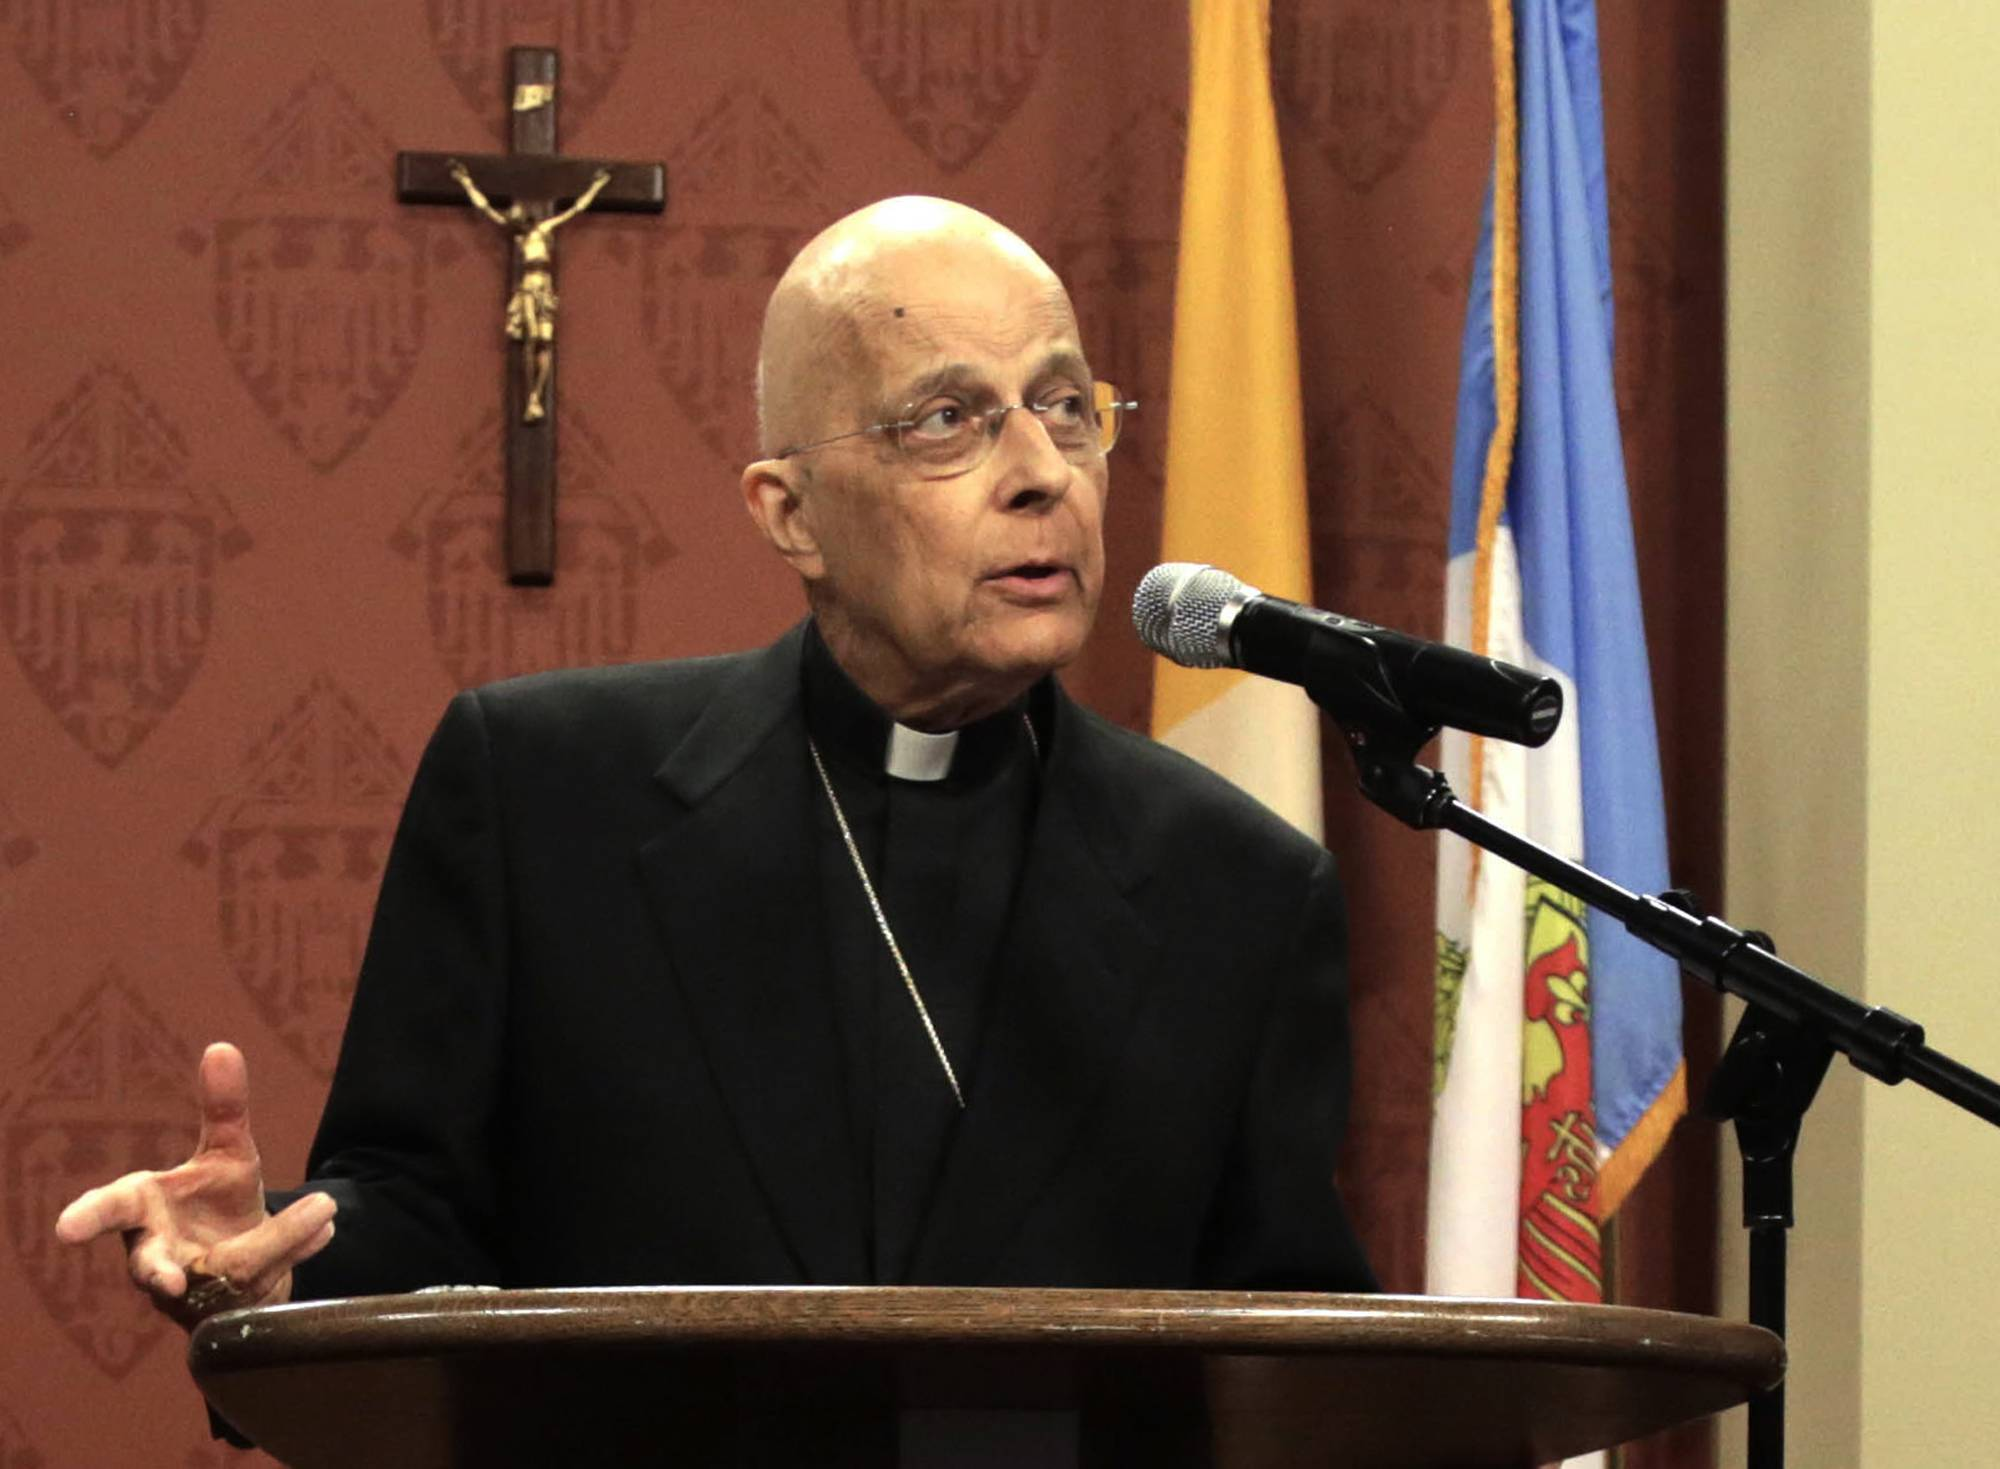 Chicago Cardinal Francis George